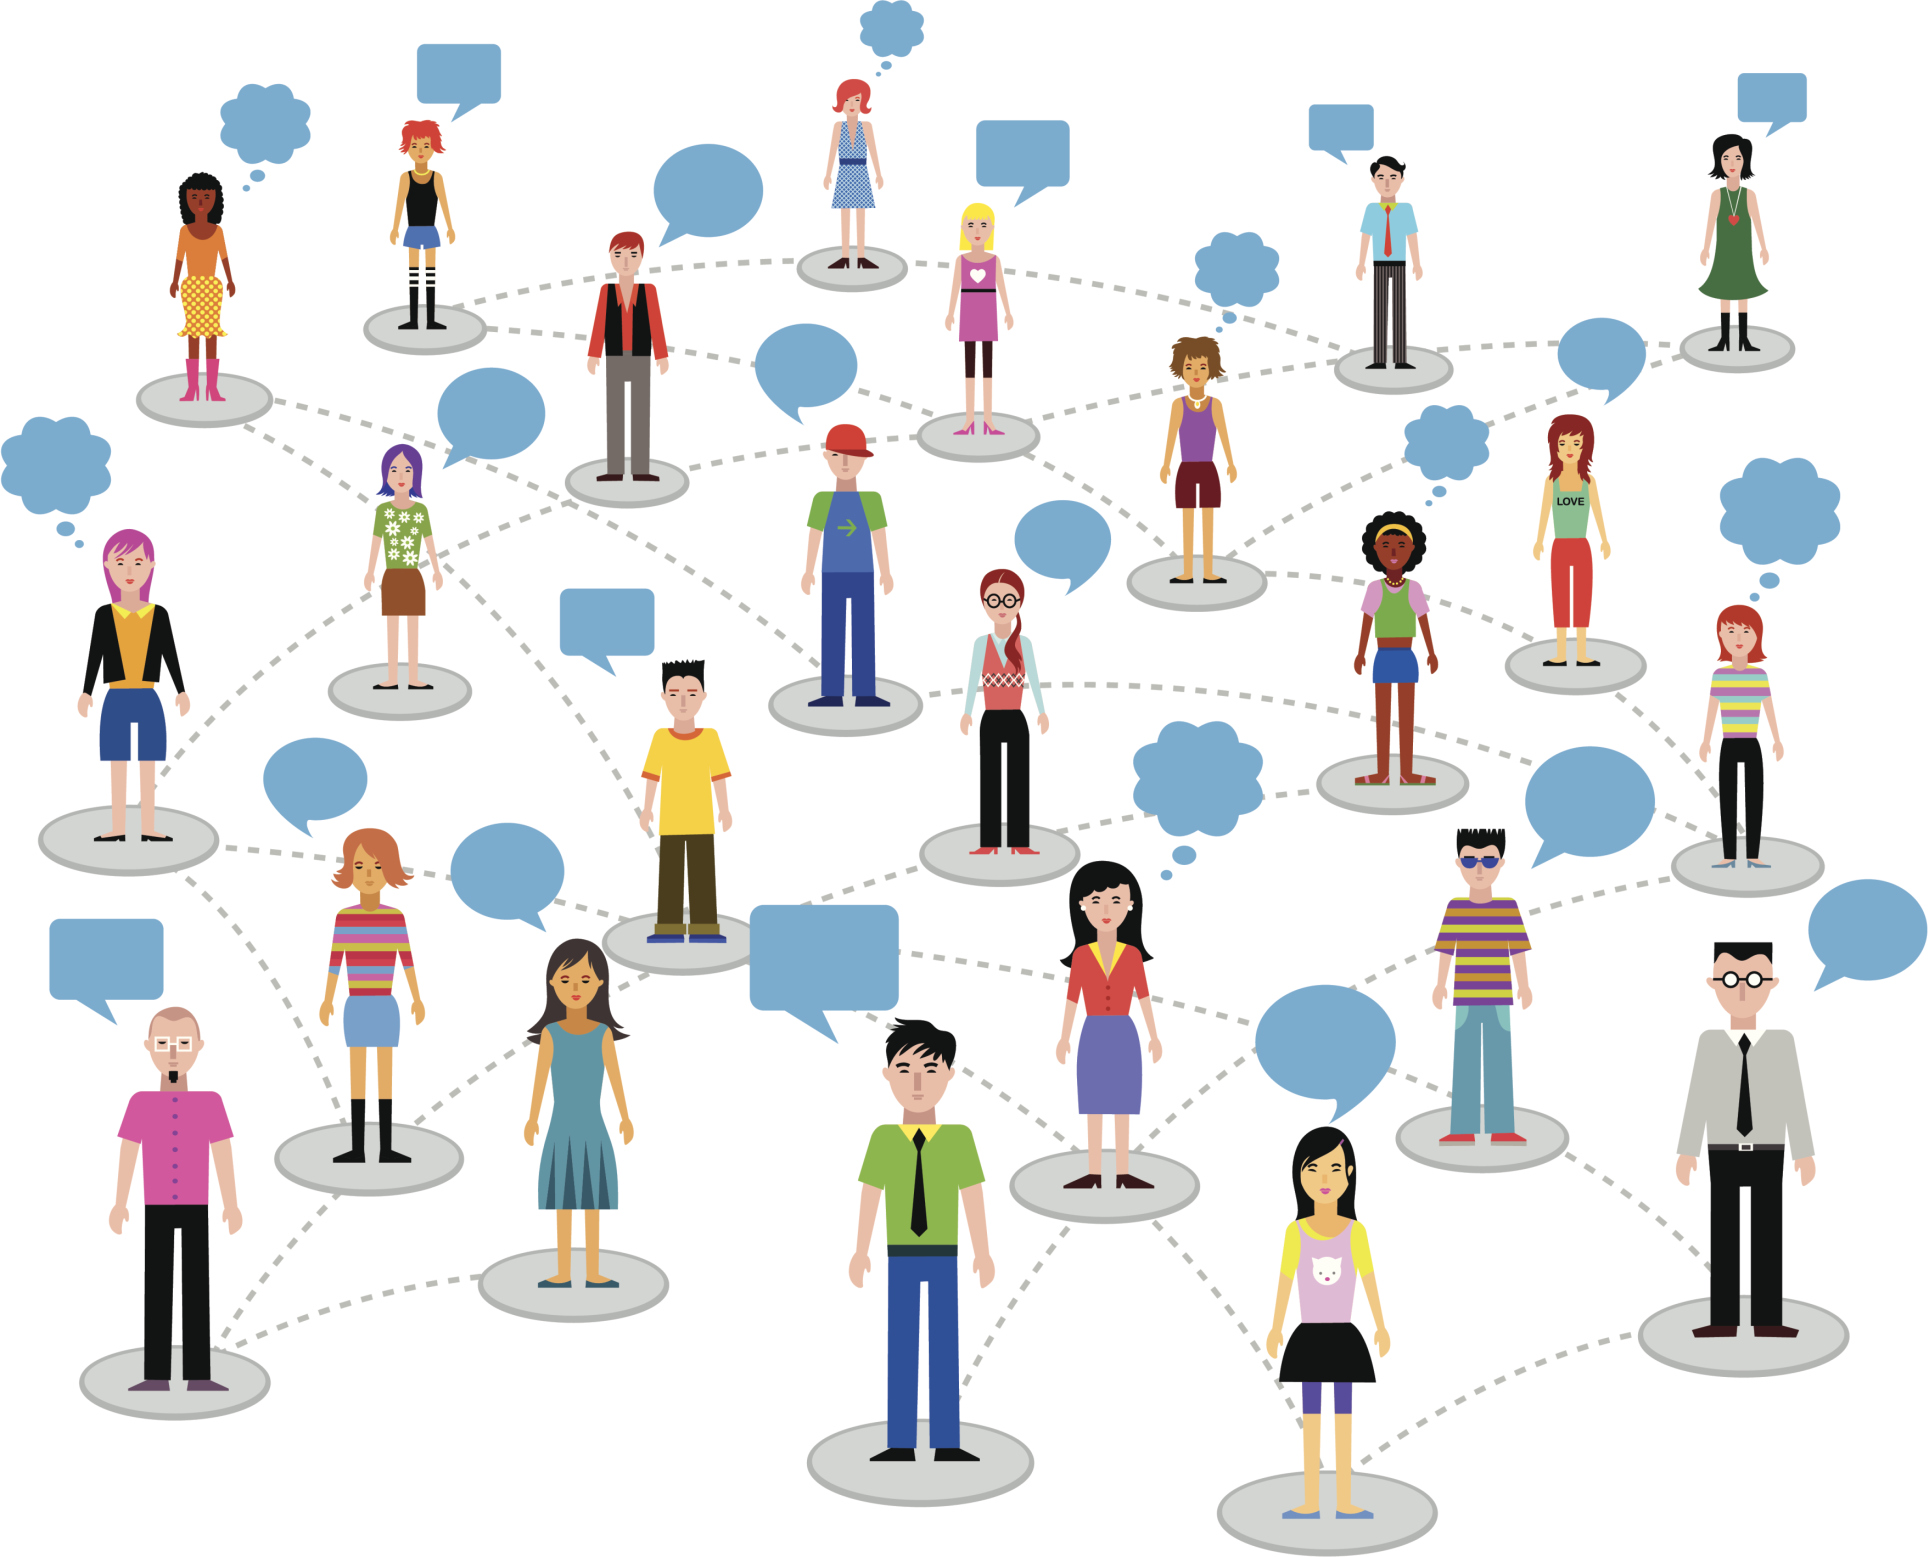 Network clipart social networking site. Serving others the best